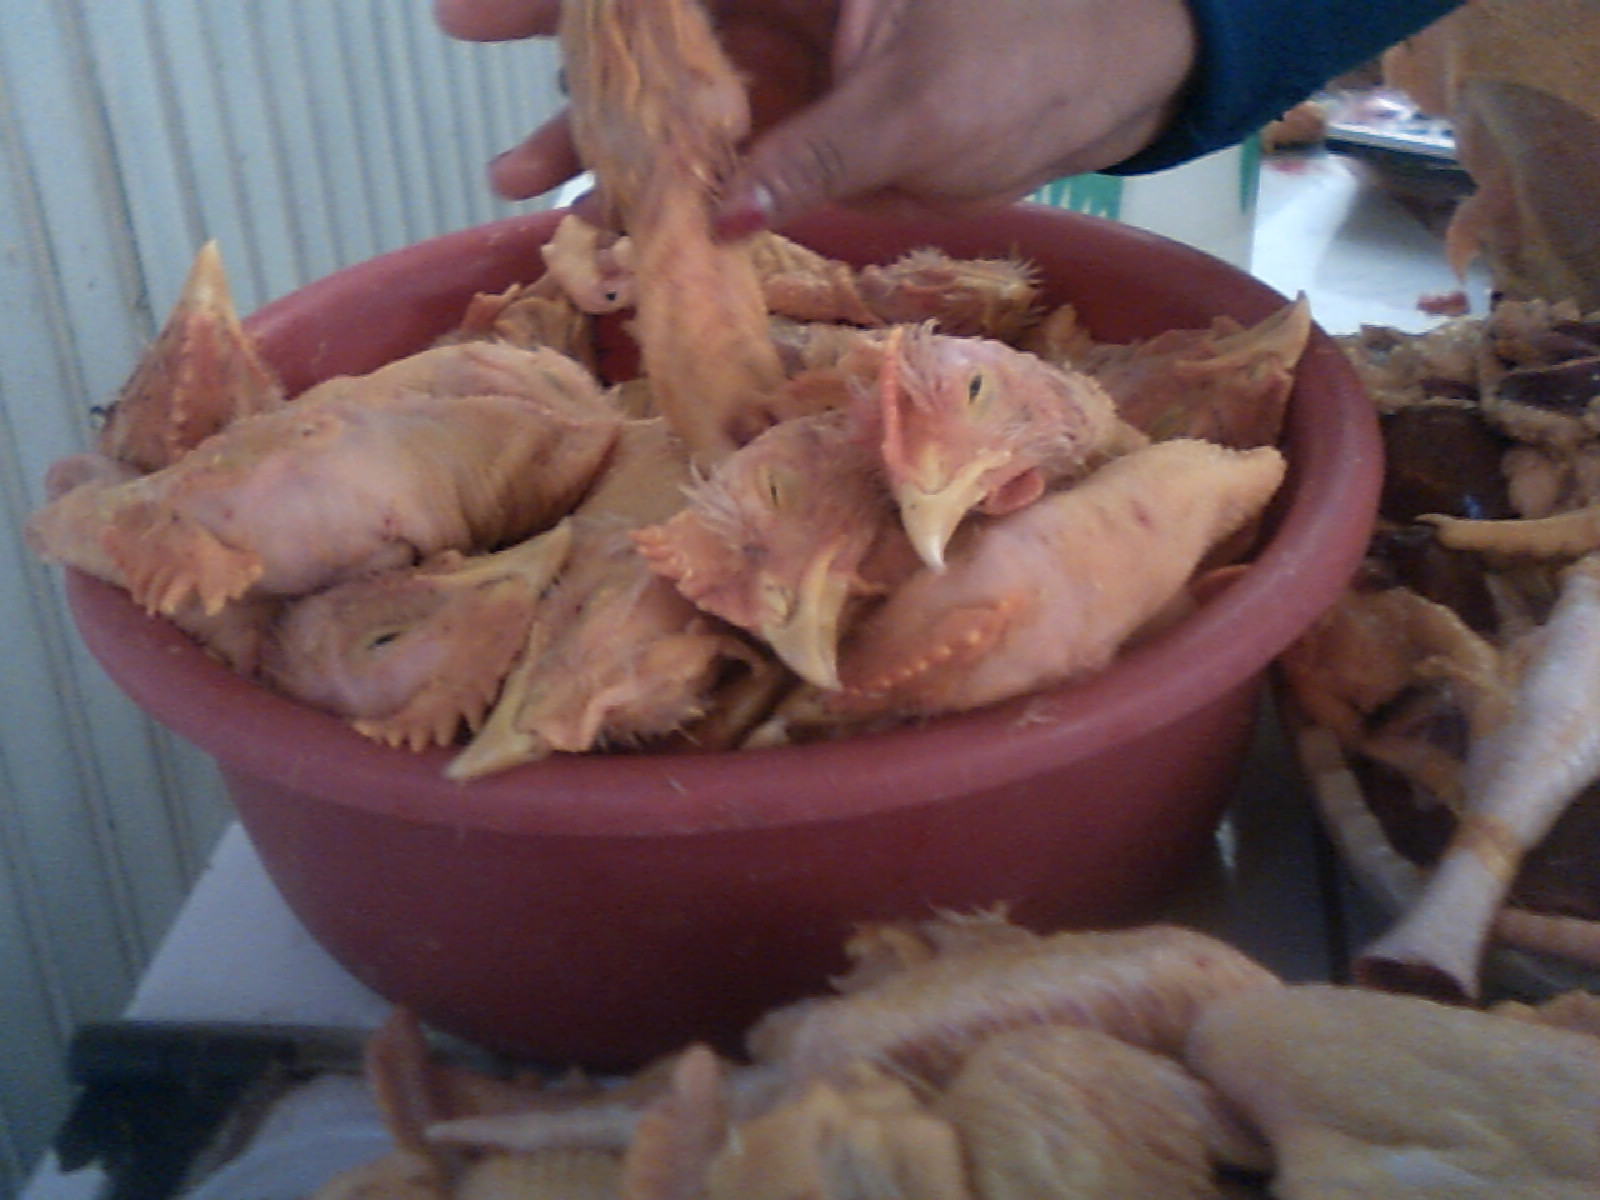 Kfc Chickens Without Heads - photo#6